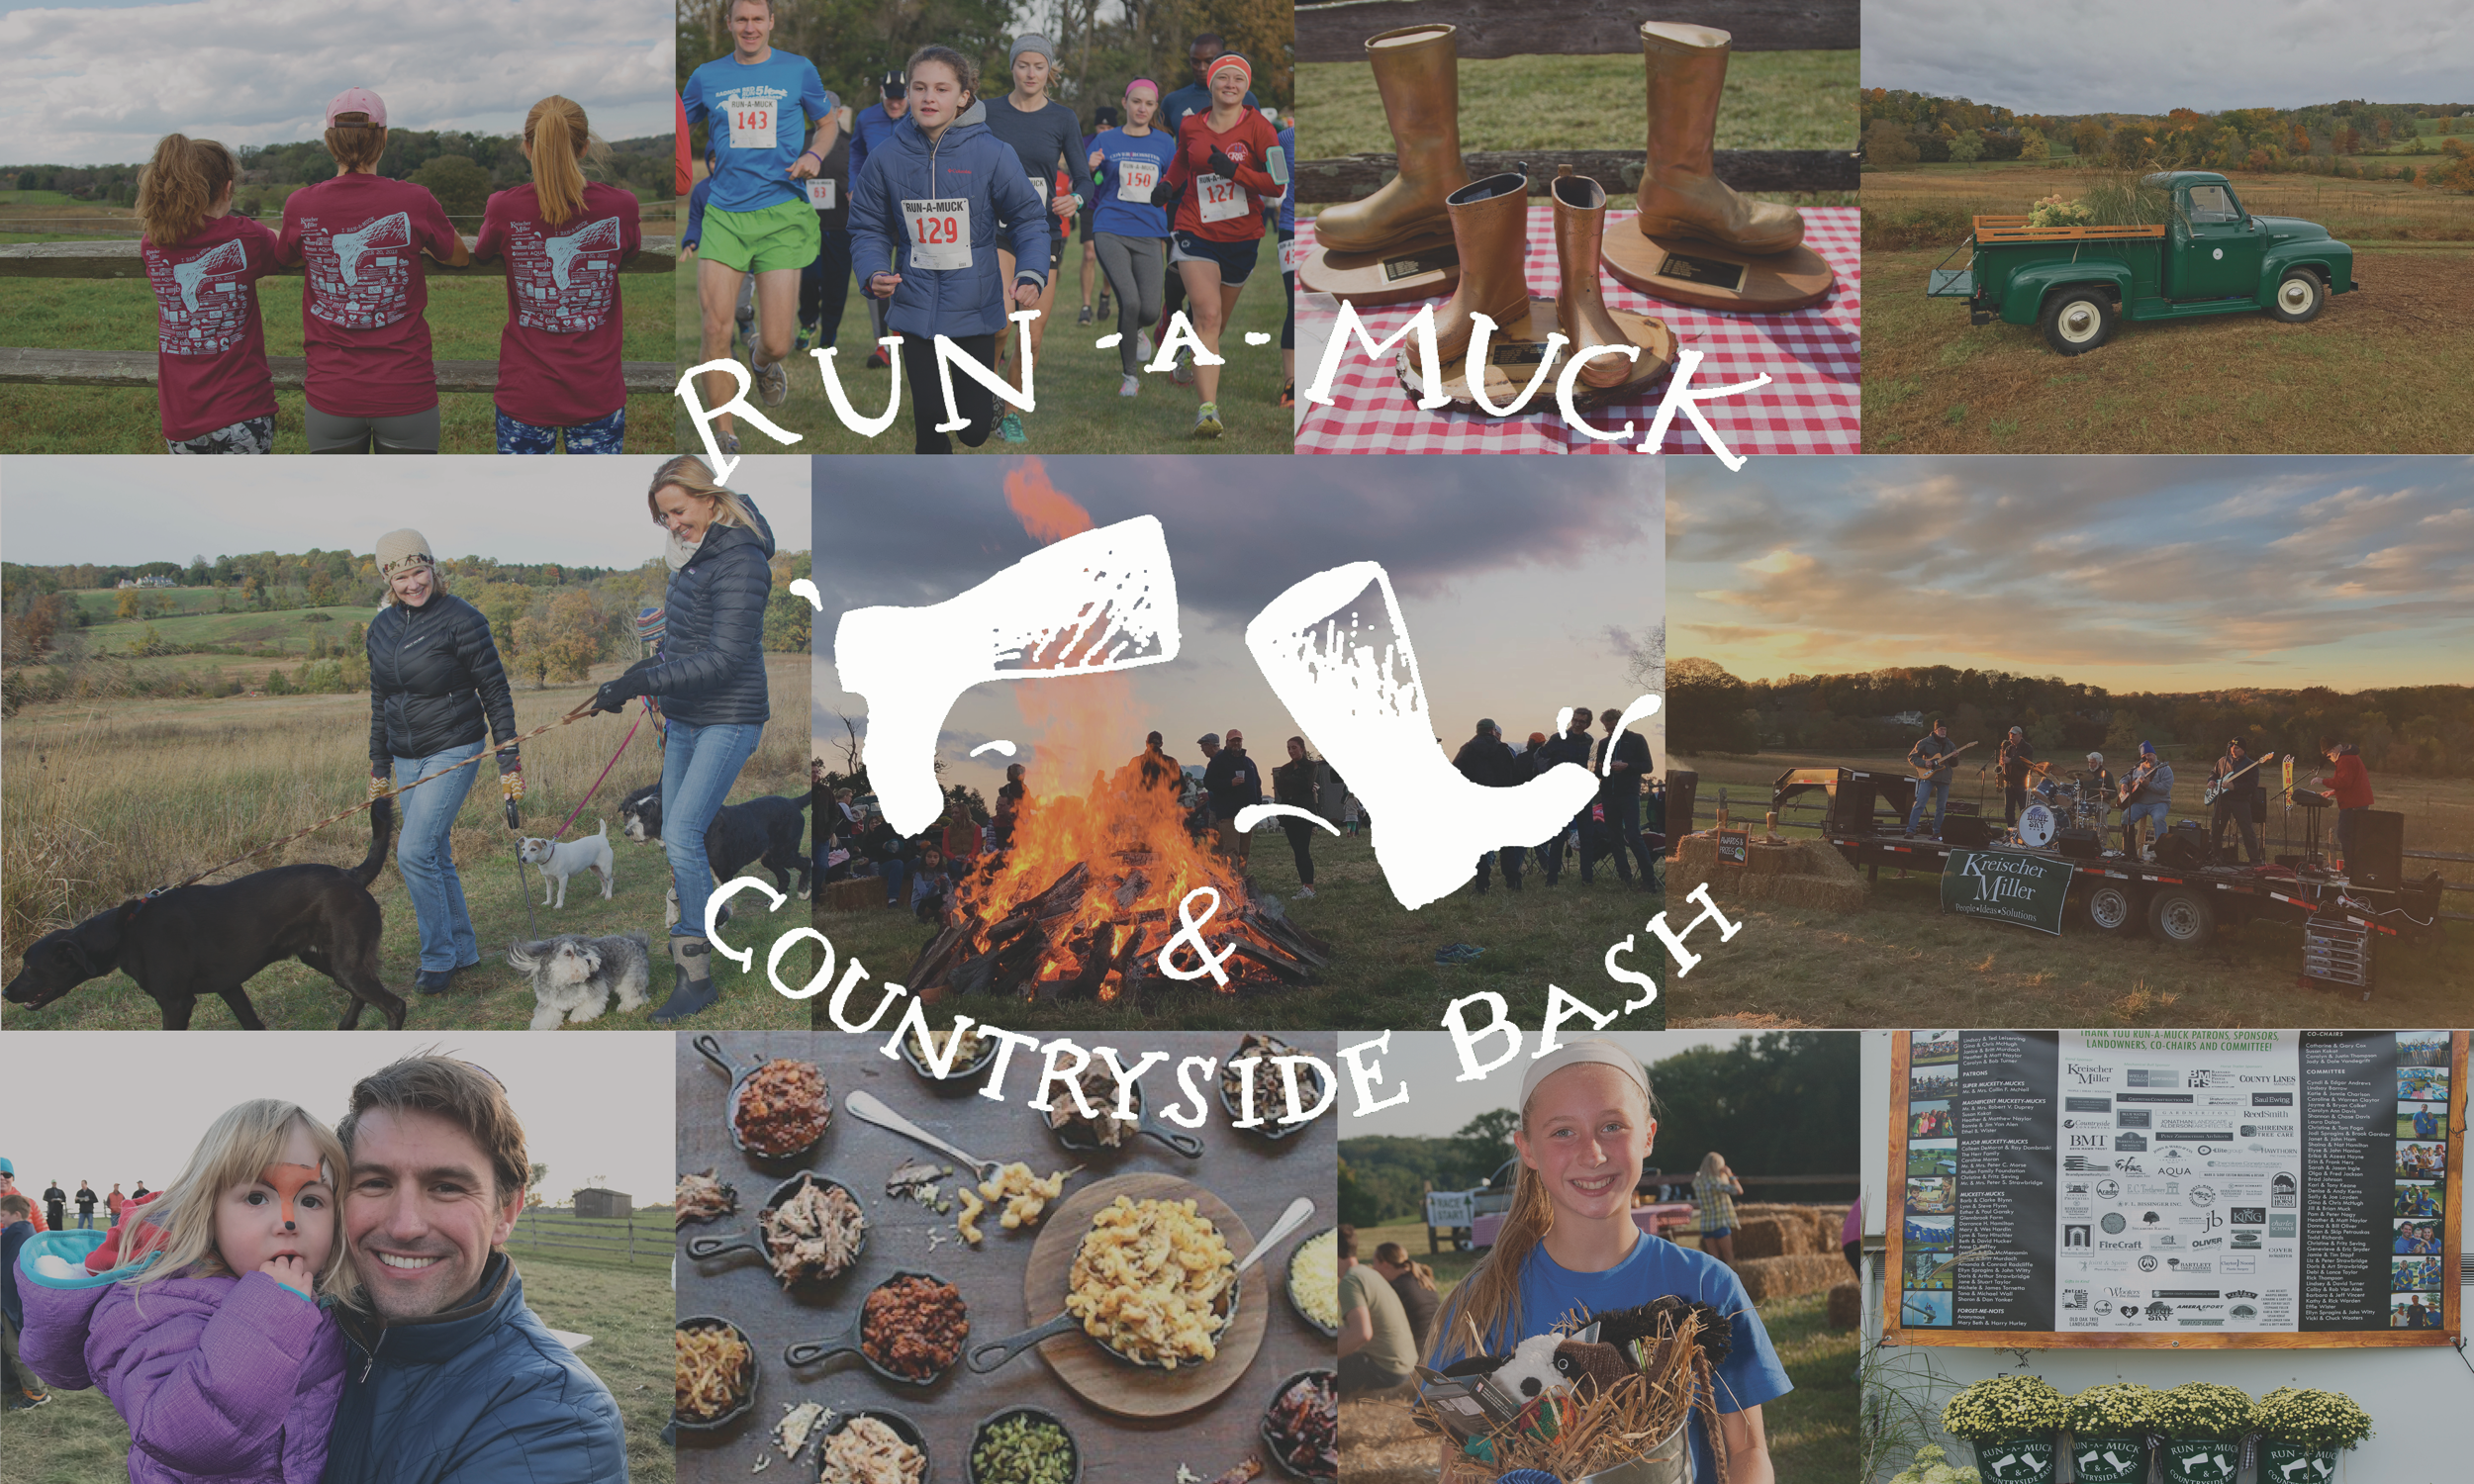 Run-a-Muck-collage-photo-for-website-page_reduced